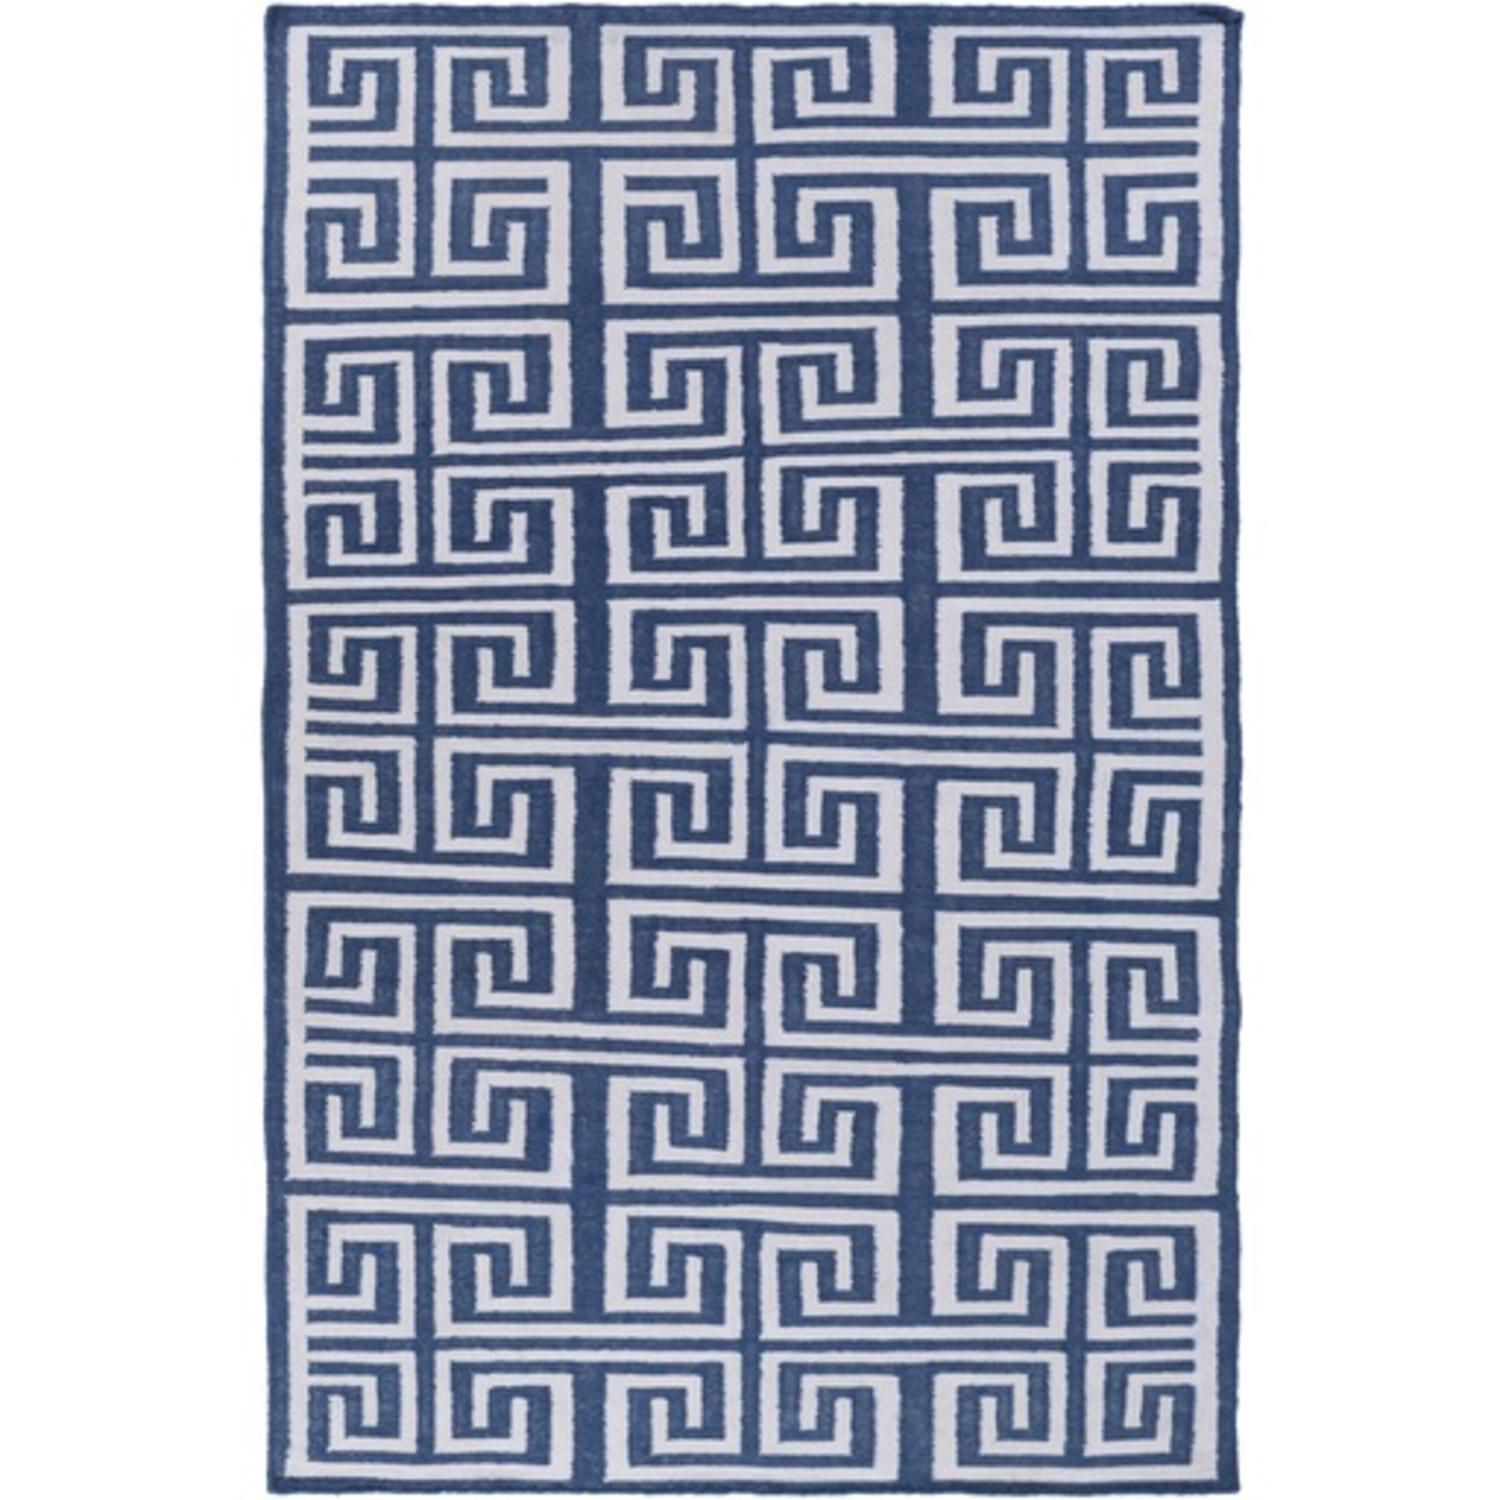 5' x 8' Magical Mazes Navy Blue and Ivory Hand Woven Area Throw Rug